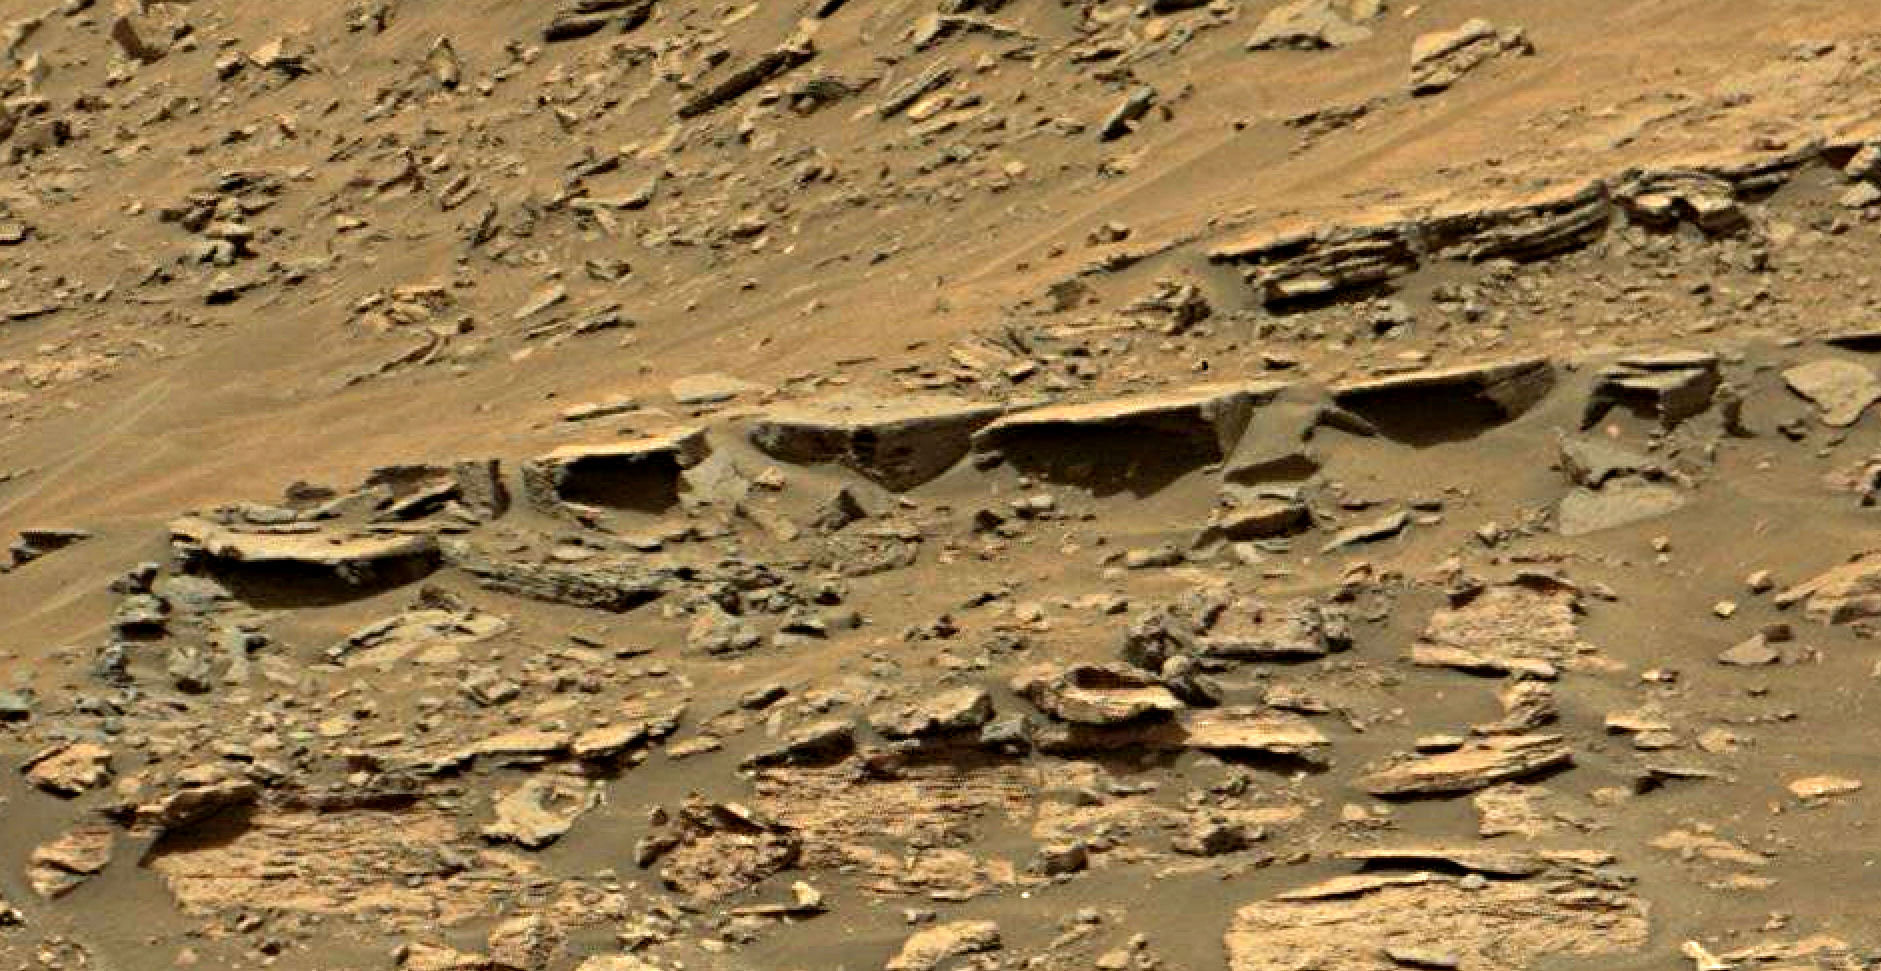 mars sol 1447 anomaly artifacts 5 - was life on mars